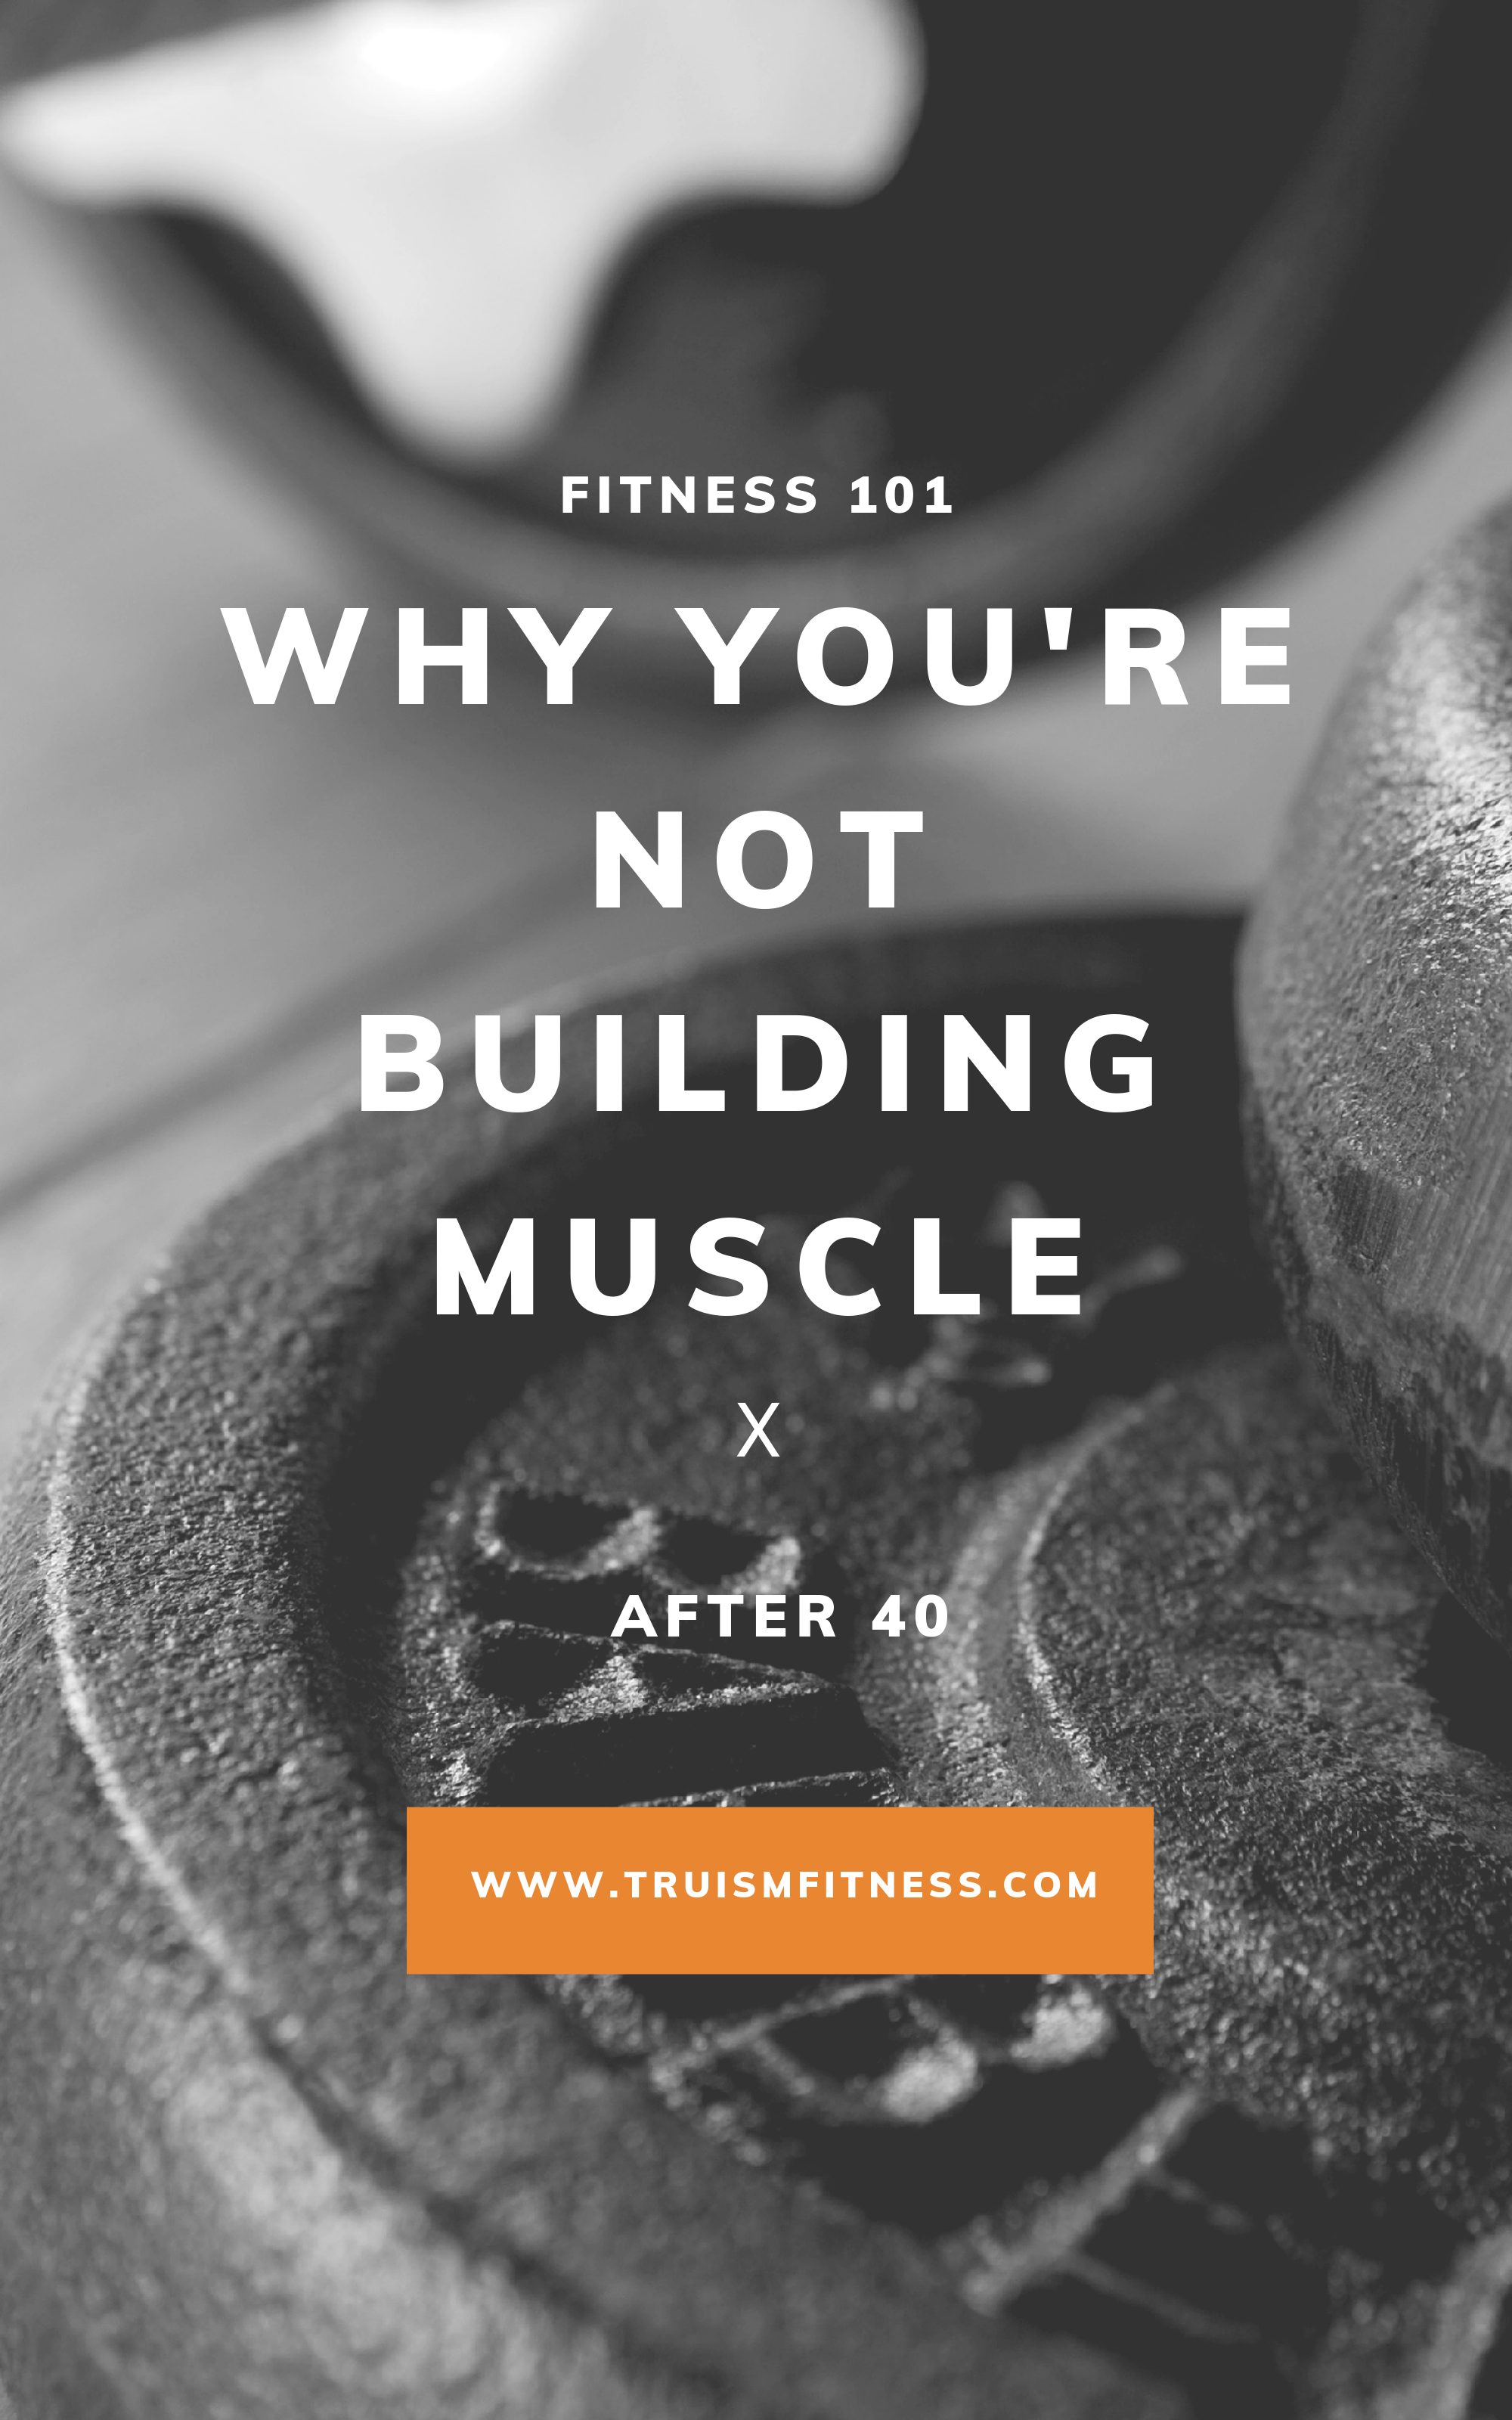 Probably one of the hardest times in our lives is as we get older learning how to build muscle and g...